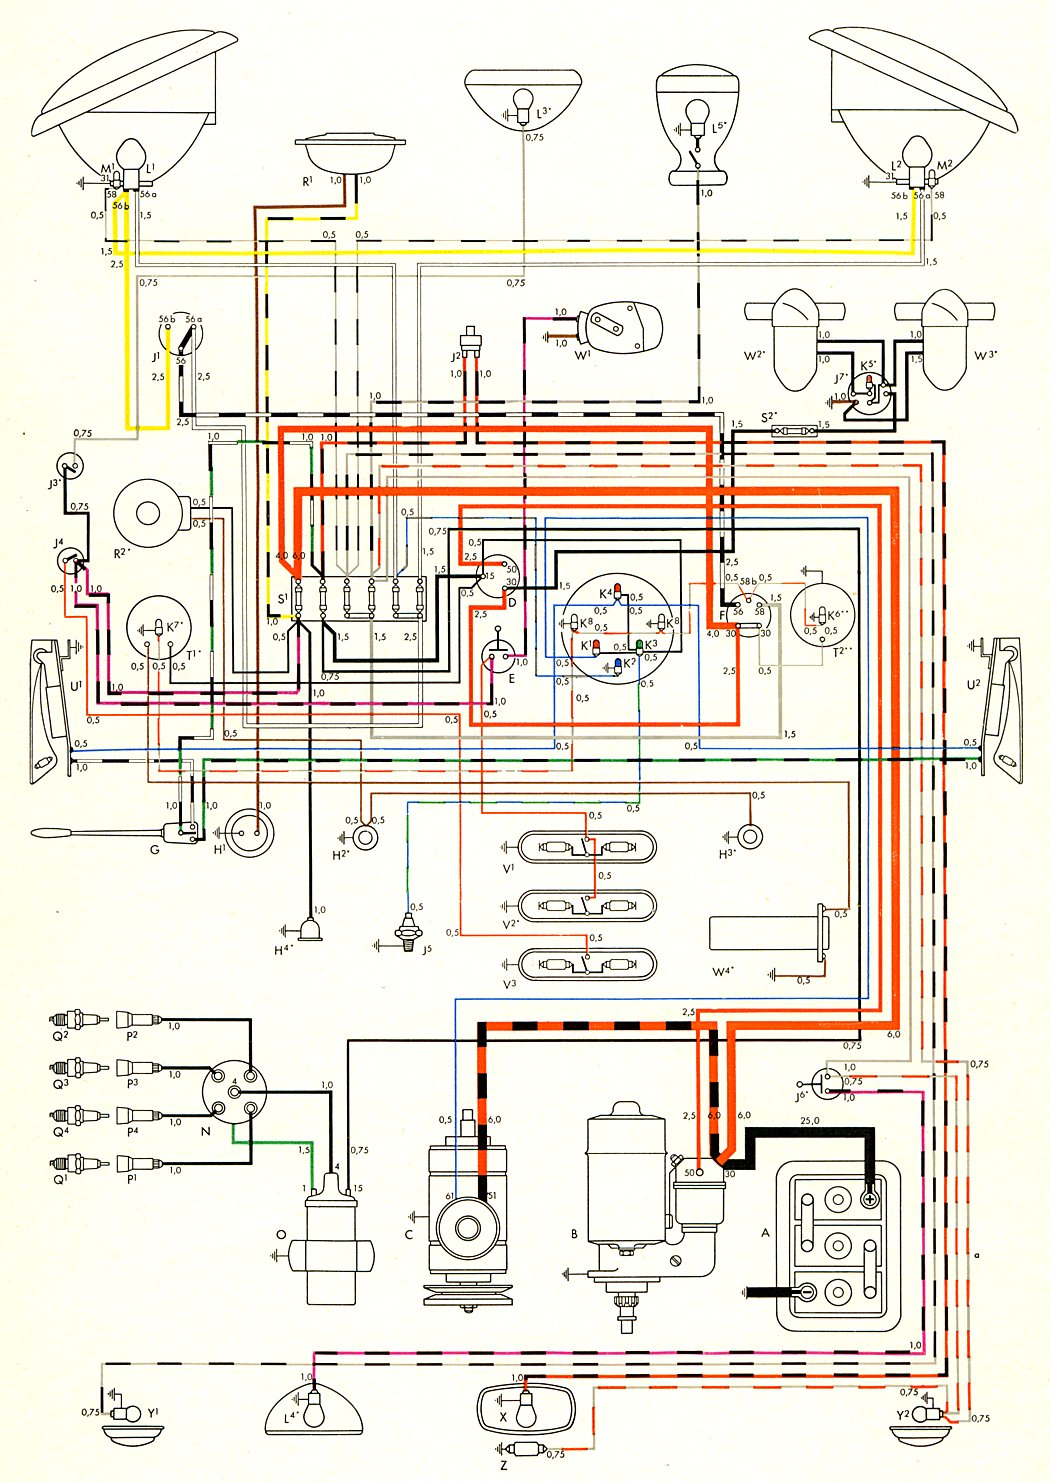 Vw Bug Generator Wiring Library Alternator Thesamba Com Type 2 Diagrams Beetle Diagram To